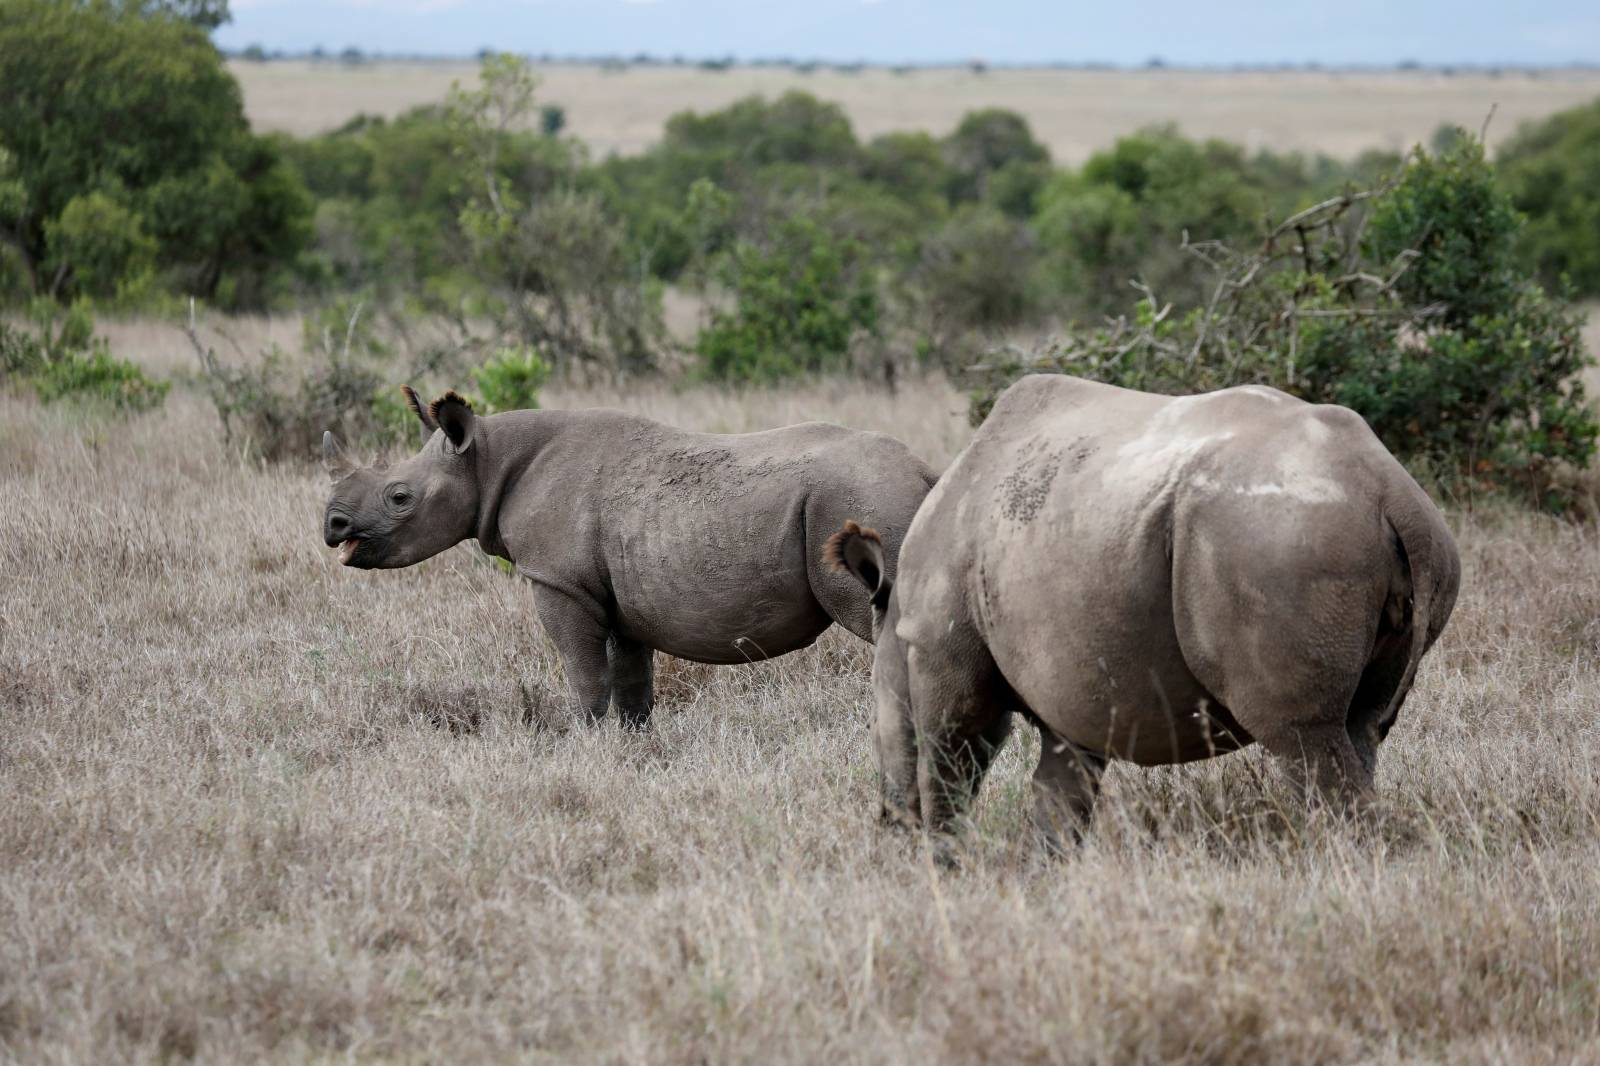 FILE PHOTO: A black rhino calf and its mother are seen at the Ol Pejeta Conservancy in Laikipia national park